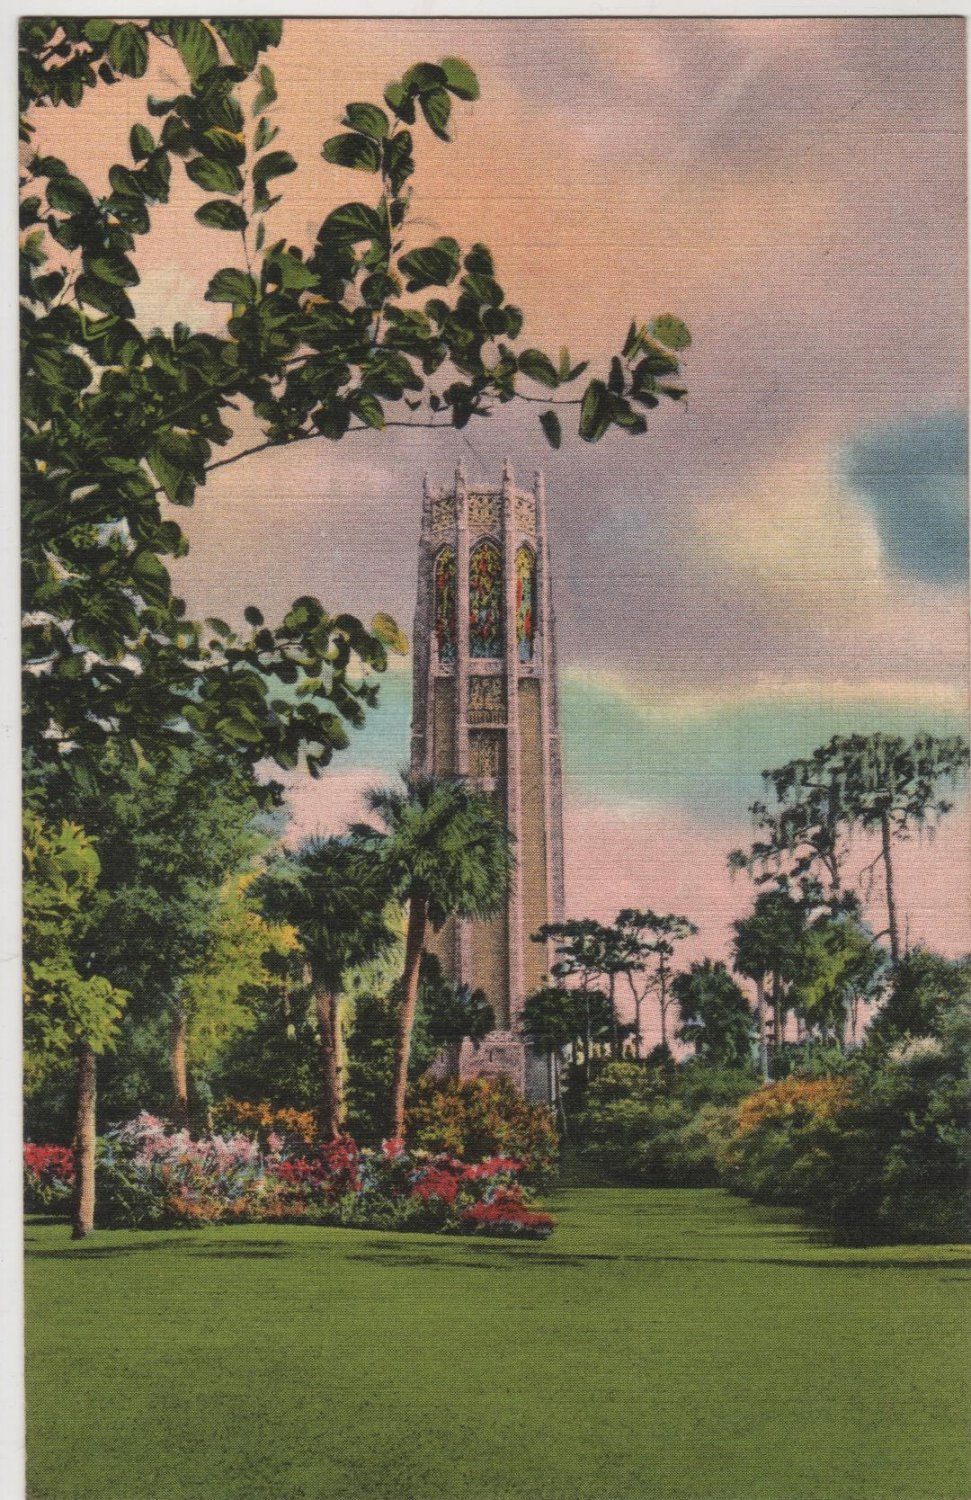 Lake Wales Florida Postcard, The Magnificent Singing Tower c.1935